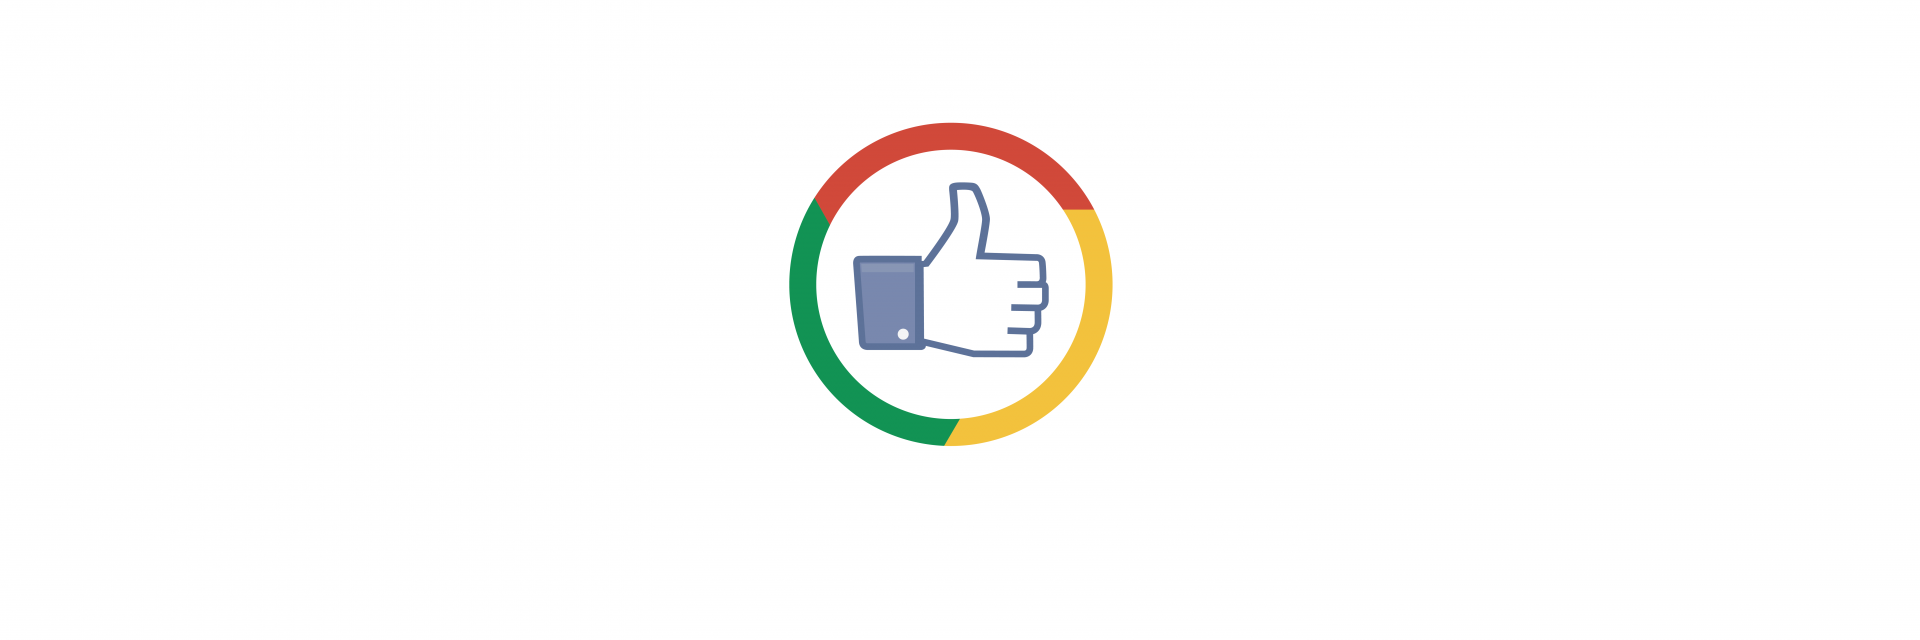 An amalgamation of the facebook like button and the google colors to represent the technology industry landscape